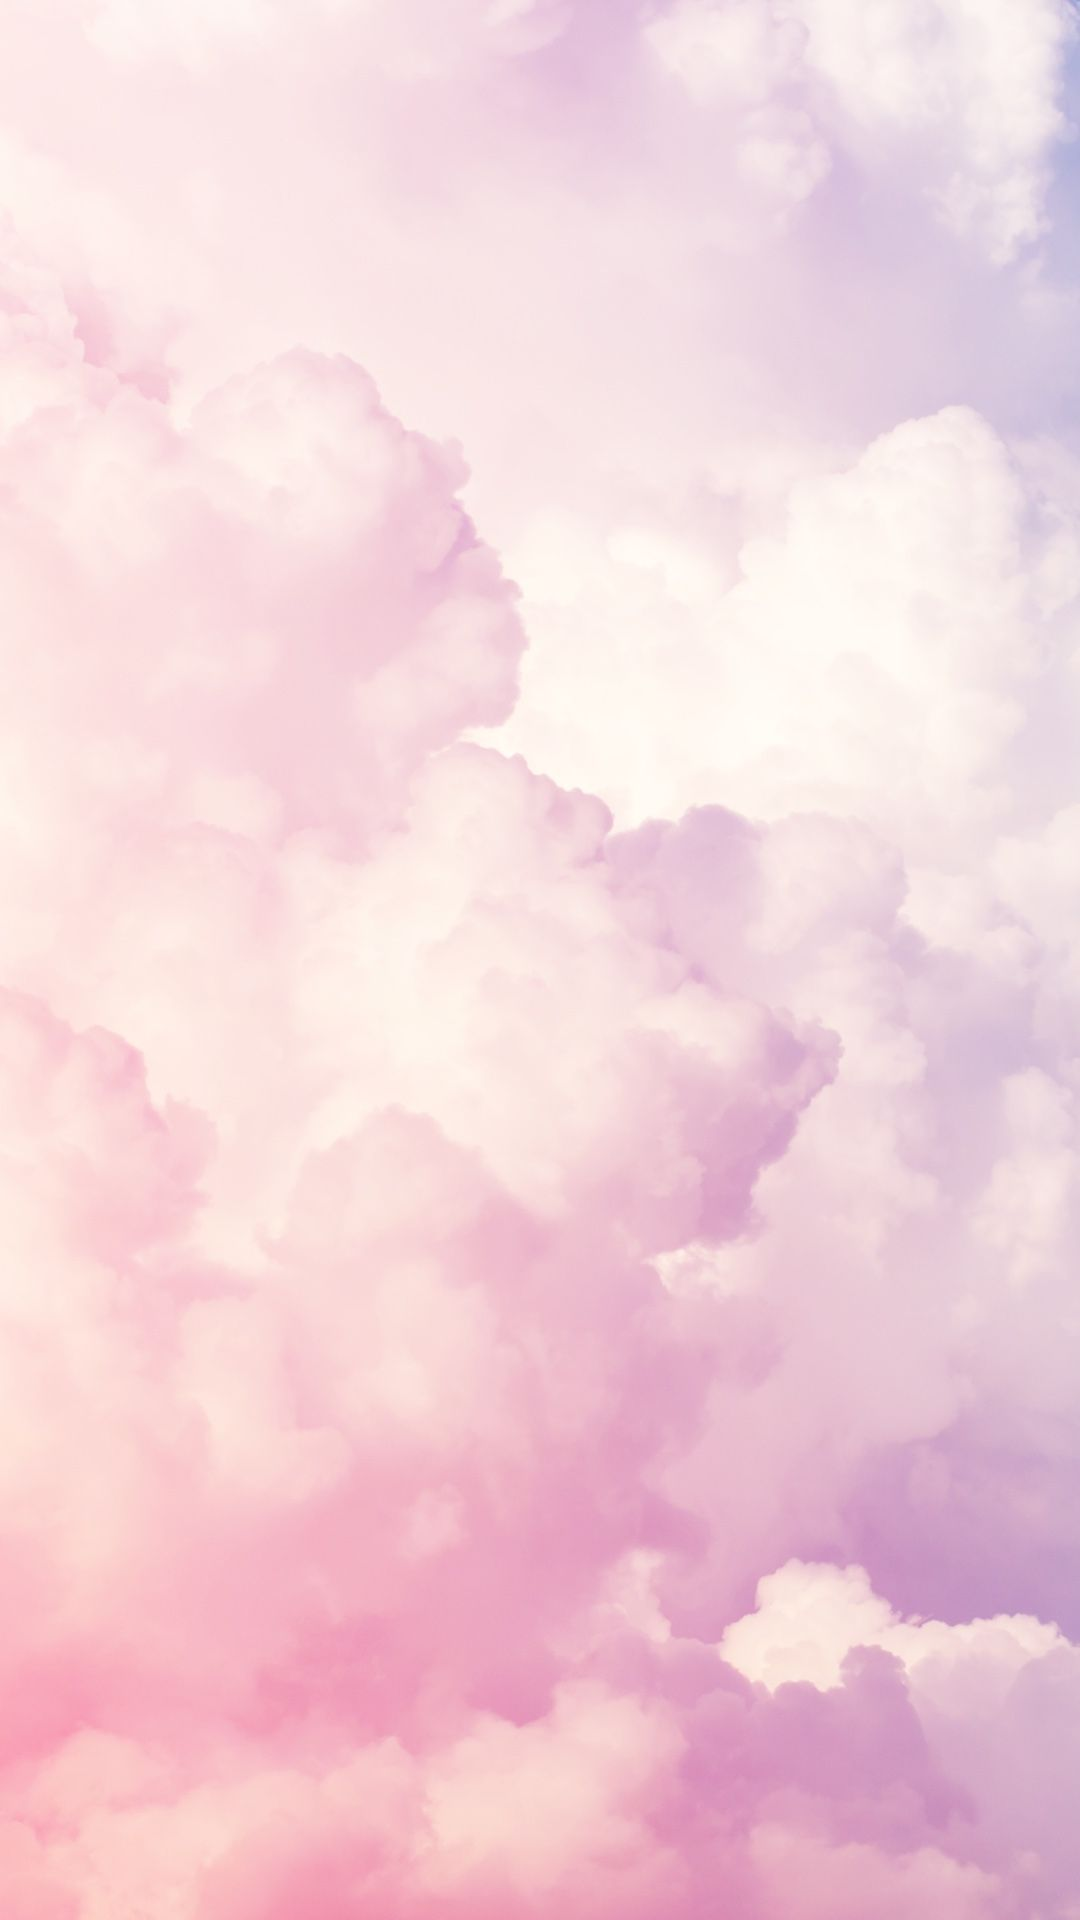 Pink Clouds Mood Enjoy New Wallpapers For Your Iphone 8 From Everpix Pink Clouds Wallpaper Pink Wallpaper Iphone Clouds Wallpaper Iphone